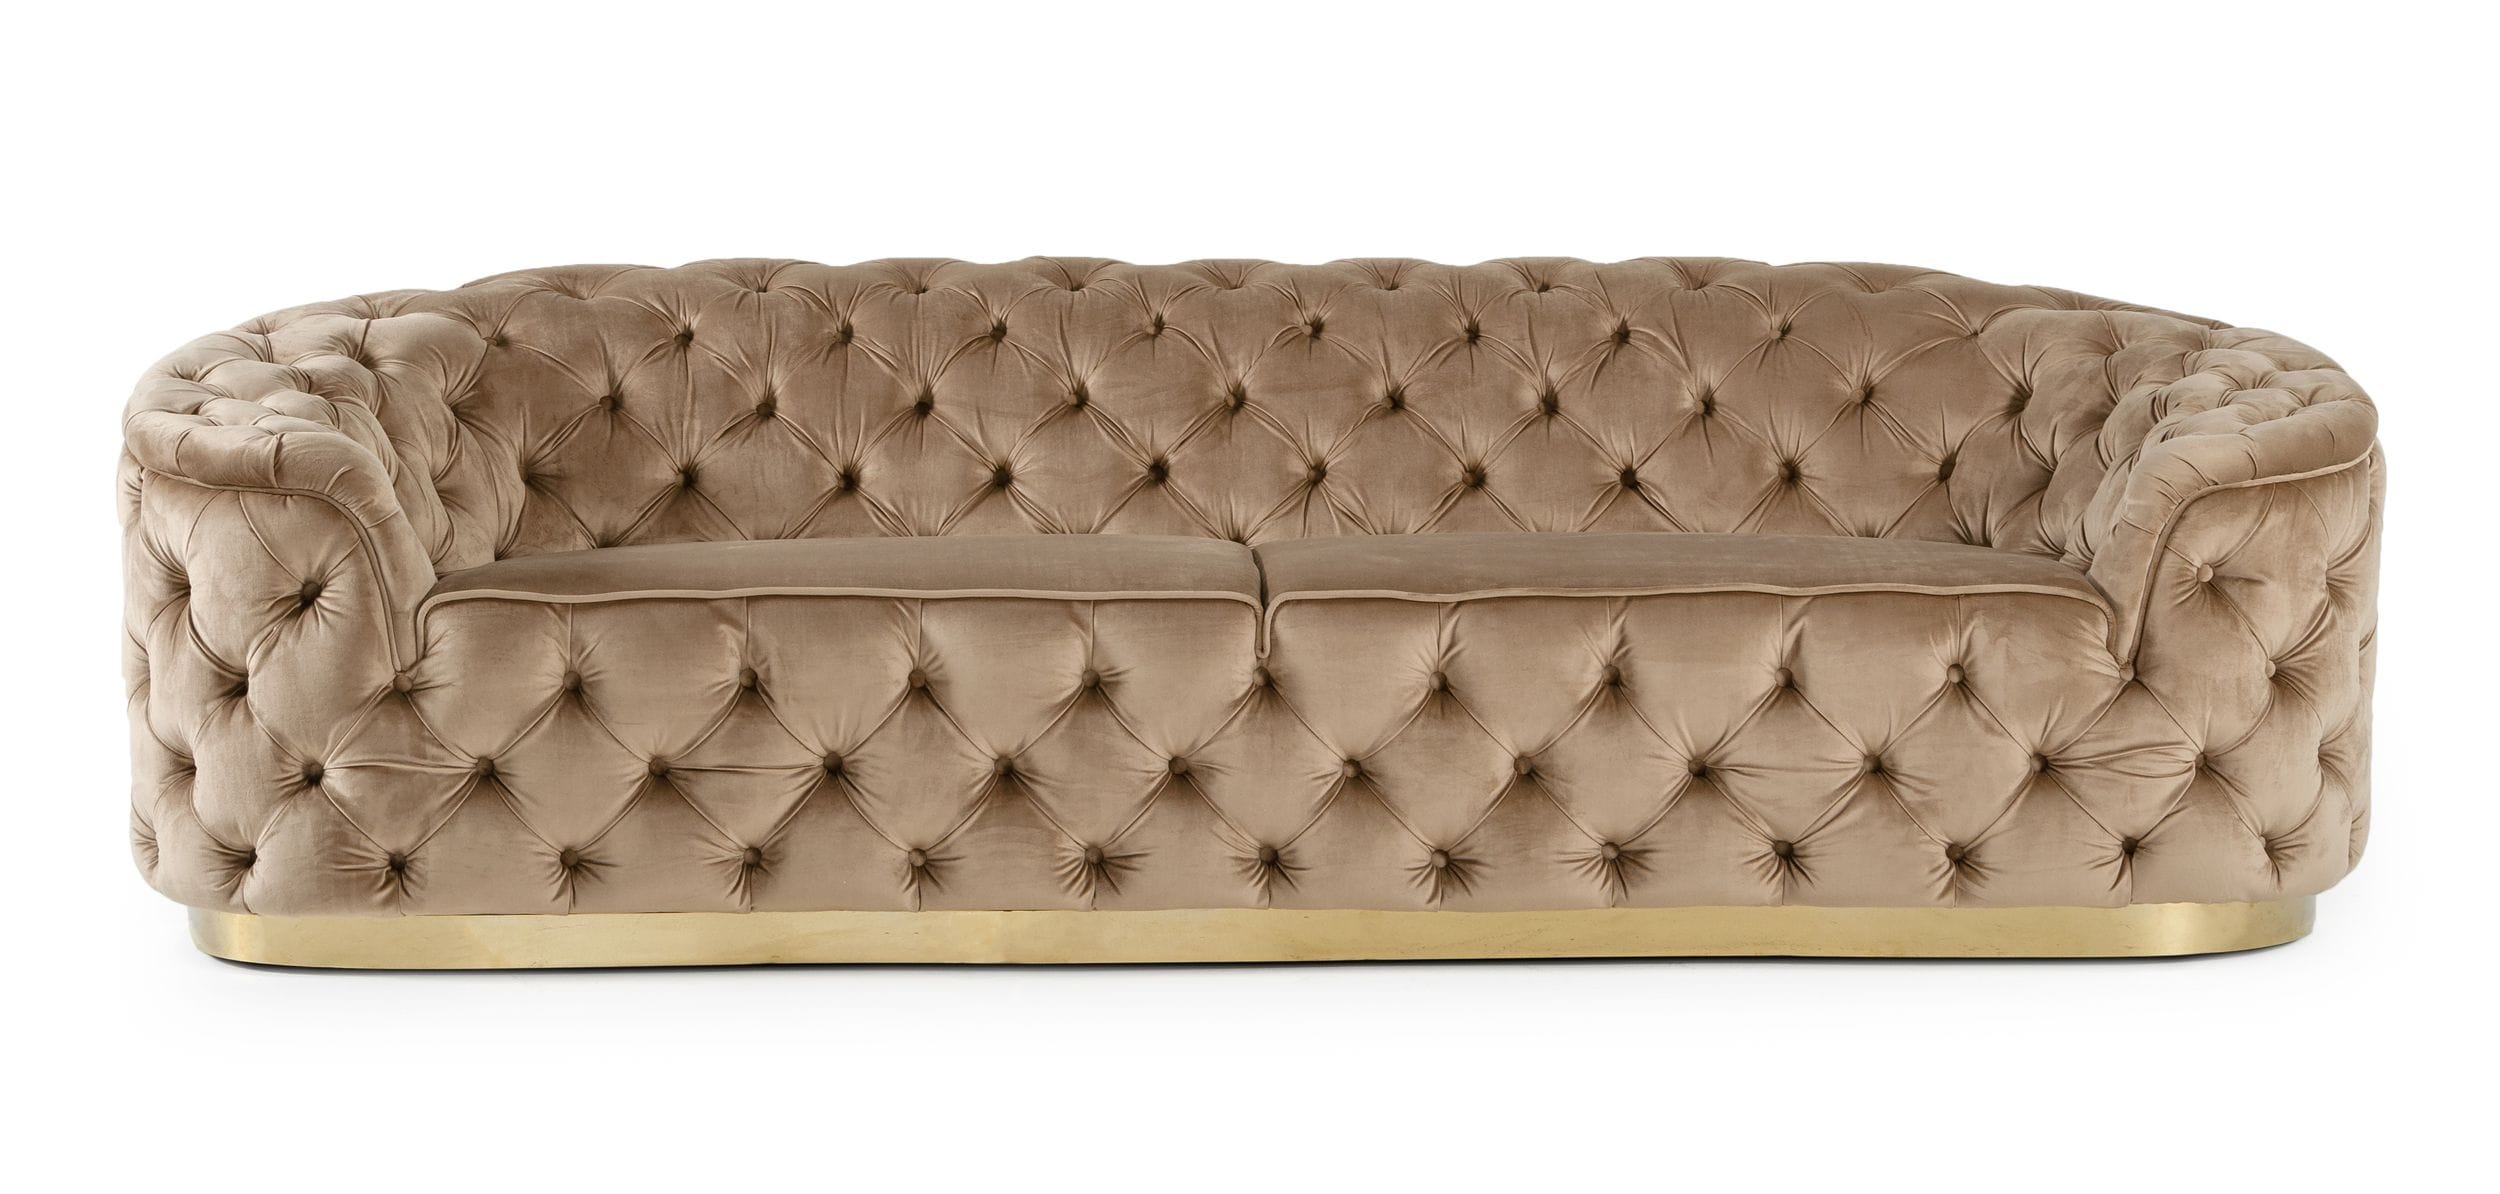 VIG Furniture Divani Casa Murdoch Glam Beige and Gold Fabric Sofa